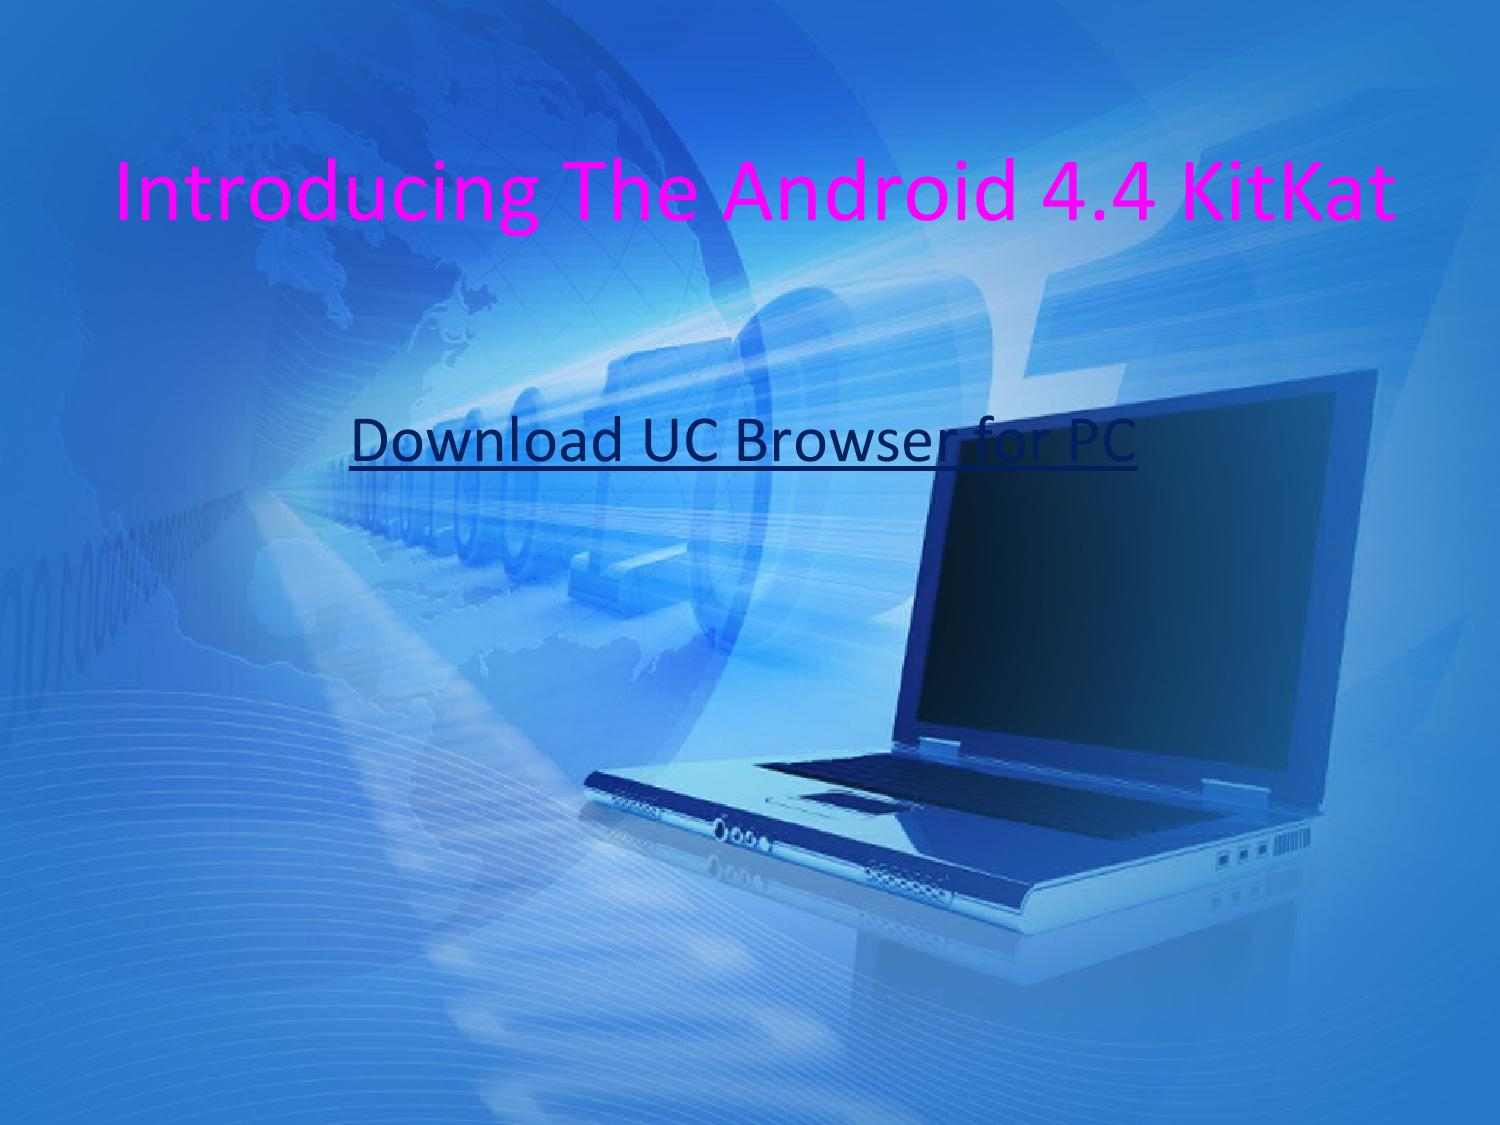 Download uc browser for pc by vkimarketing shash - issuu